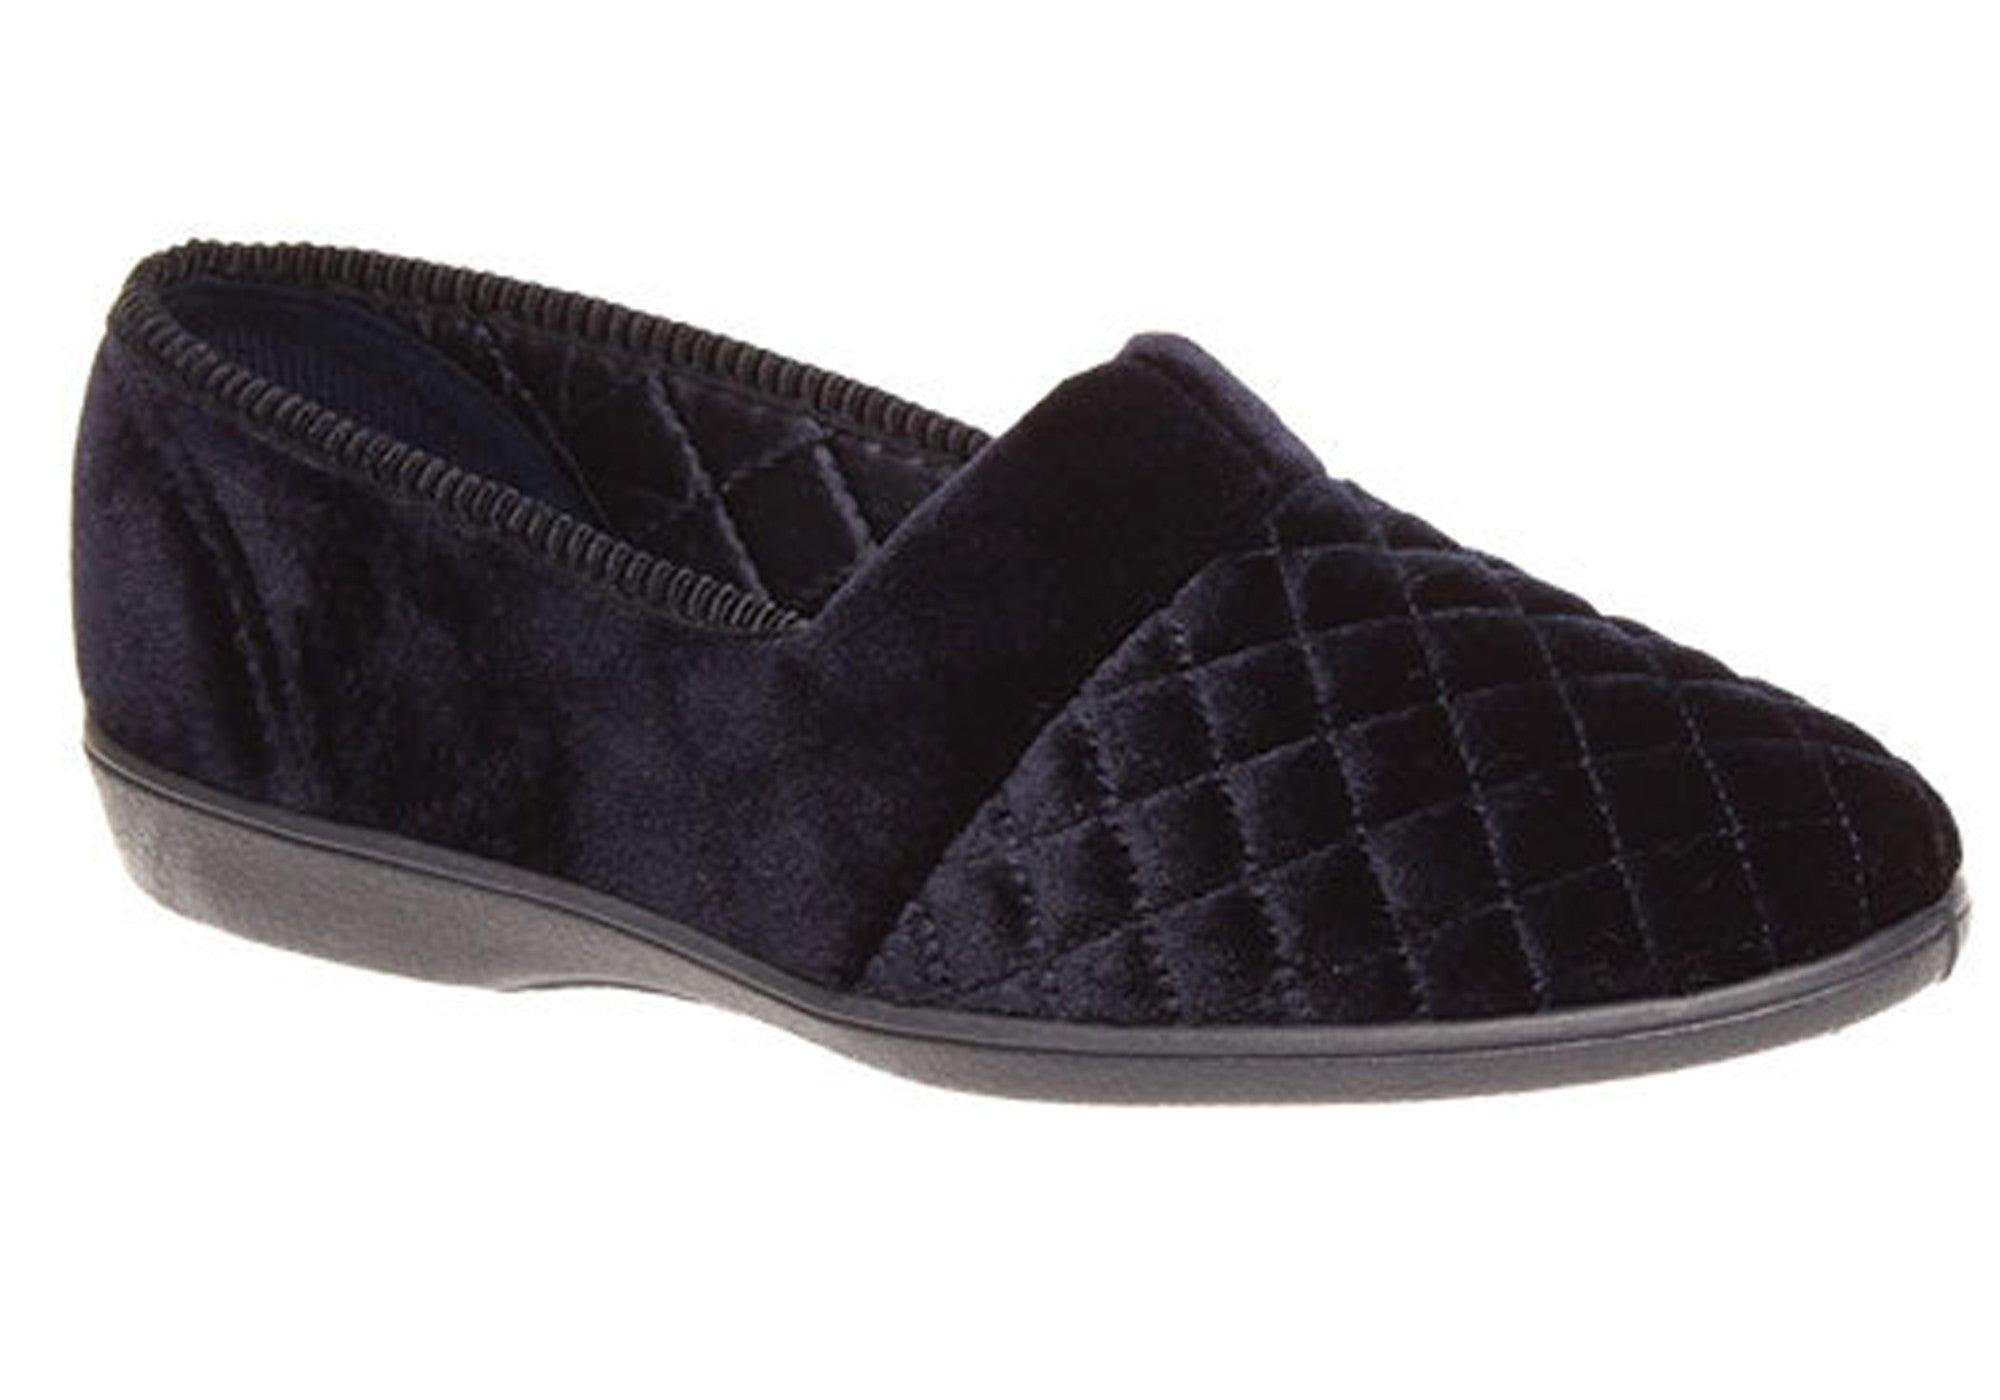 9e157d00e88 Details about NEW GROSBY MARCY 2 WOMENS COMFORTABLE INDOOR SLIPPERS